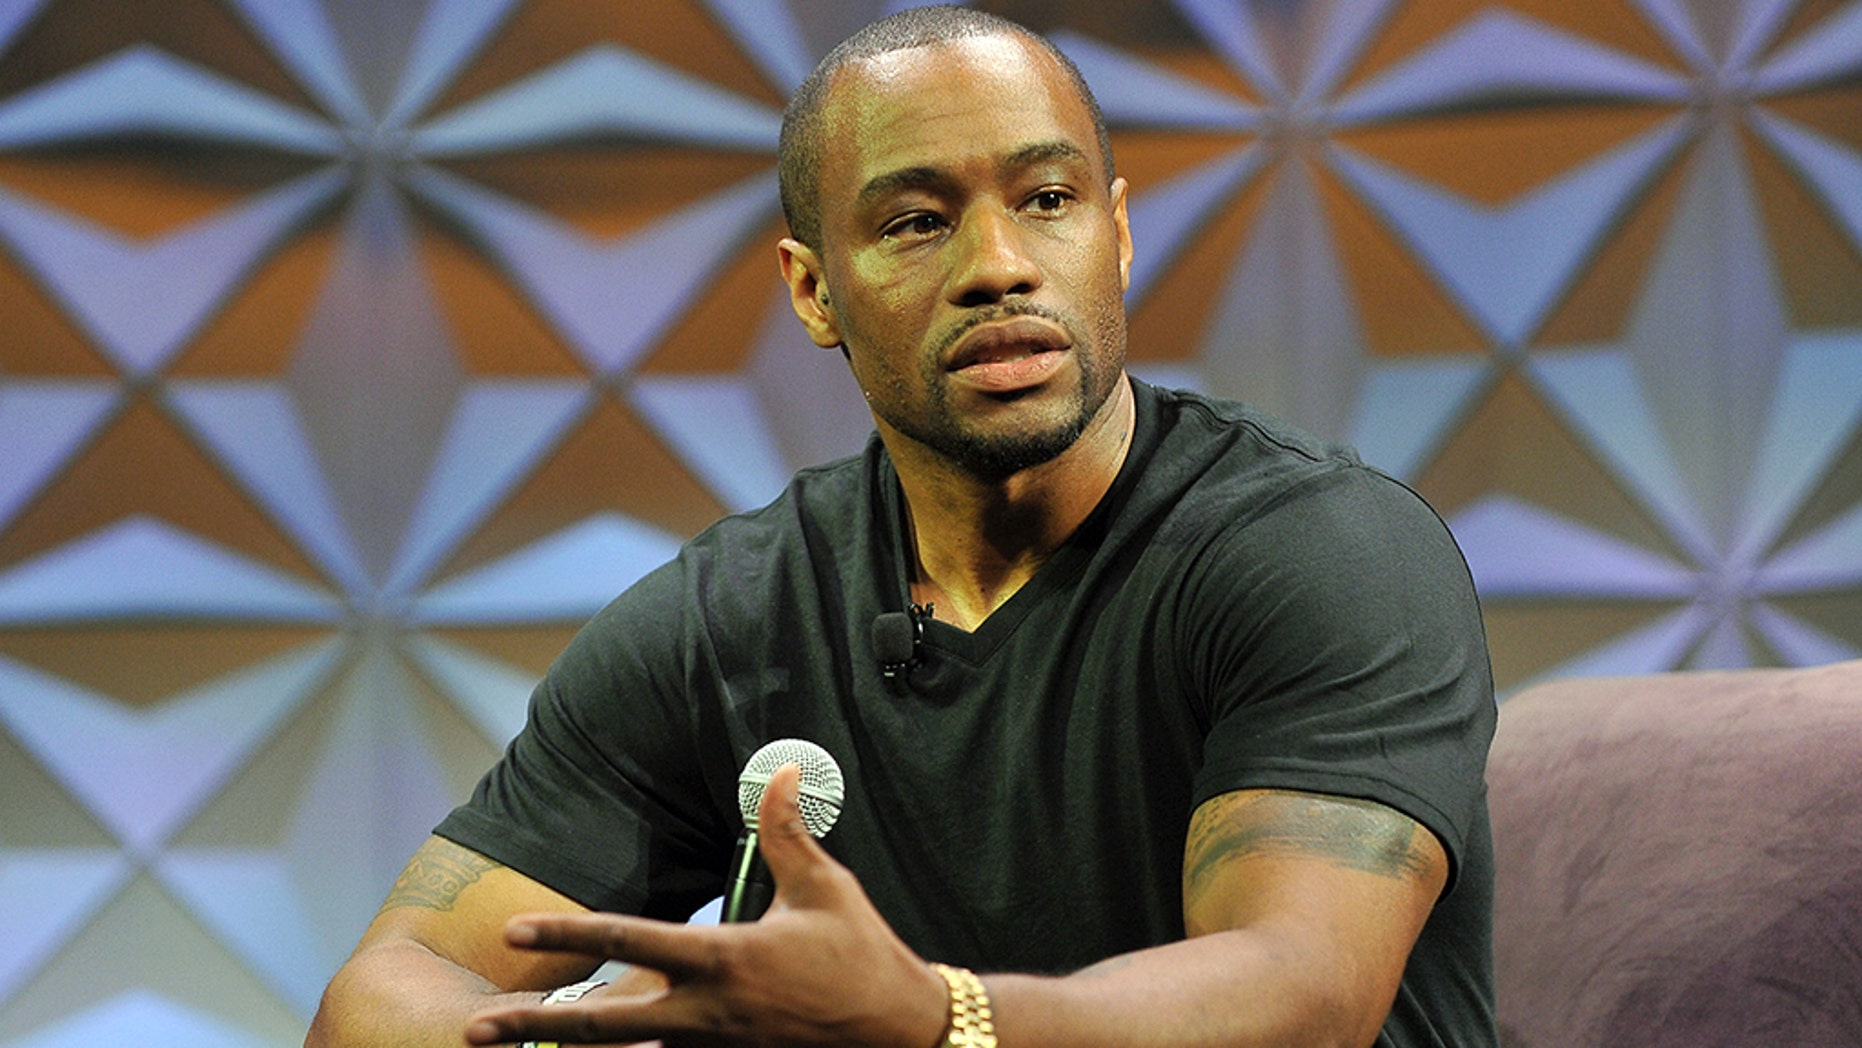 """Temple University's Board of Trustees formally announced its """"disappointment"""" in Marc Lamont Hill. (Photo by Jerod Harris/BET/Getty Images for BET, File)"""